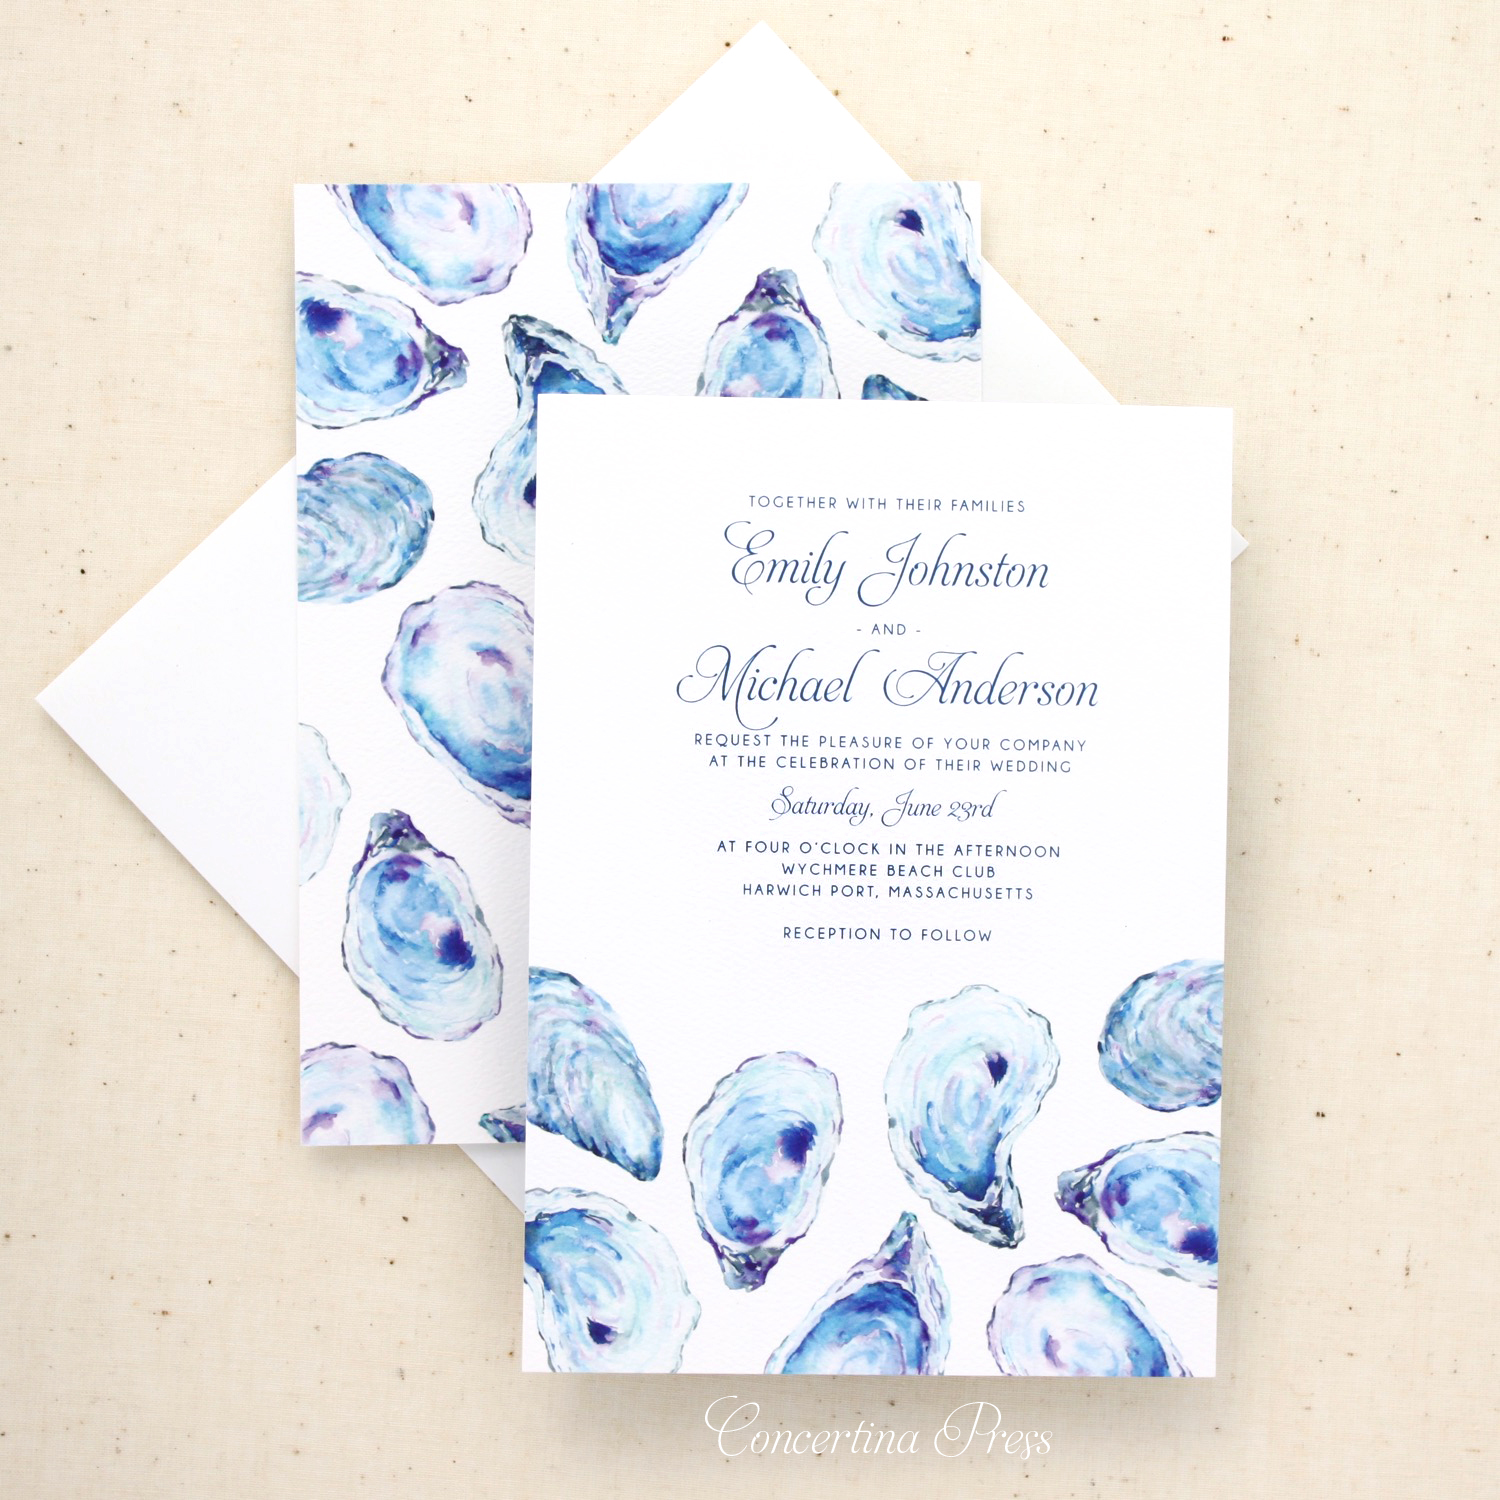 Oyster Beach Wedding Invitations from Concertina Press